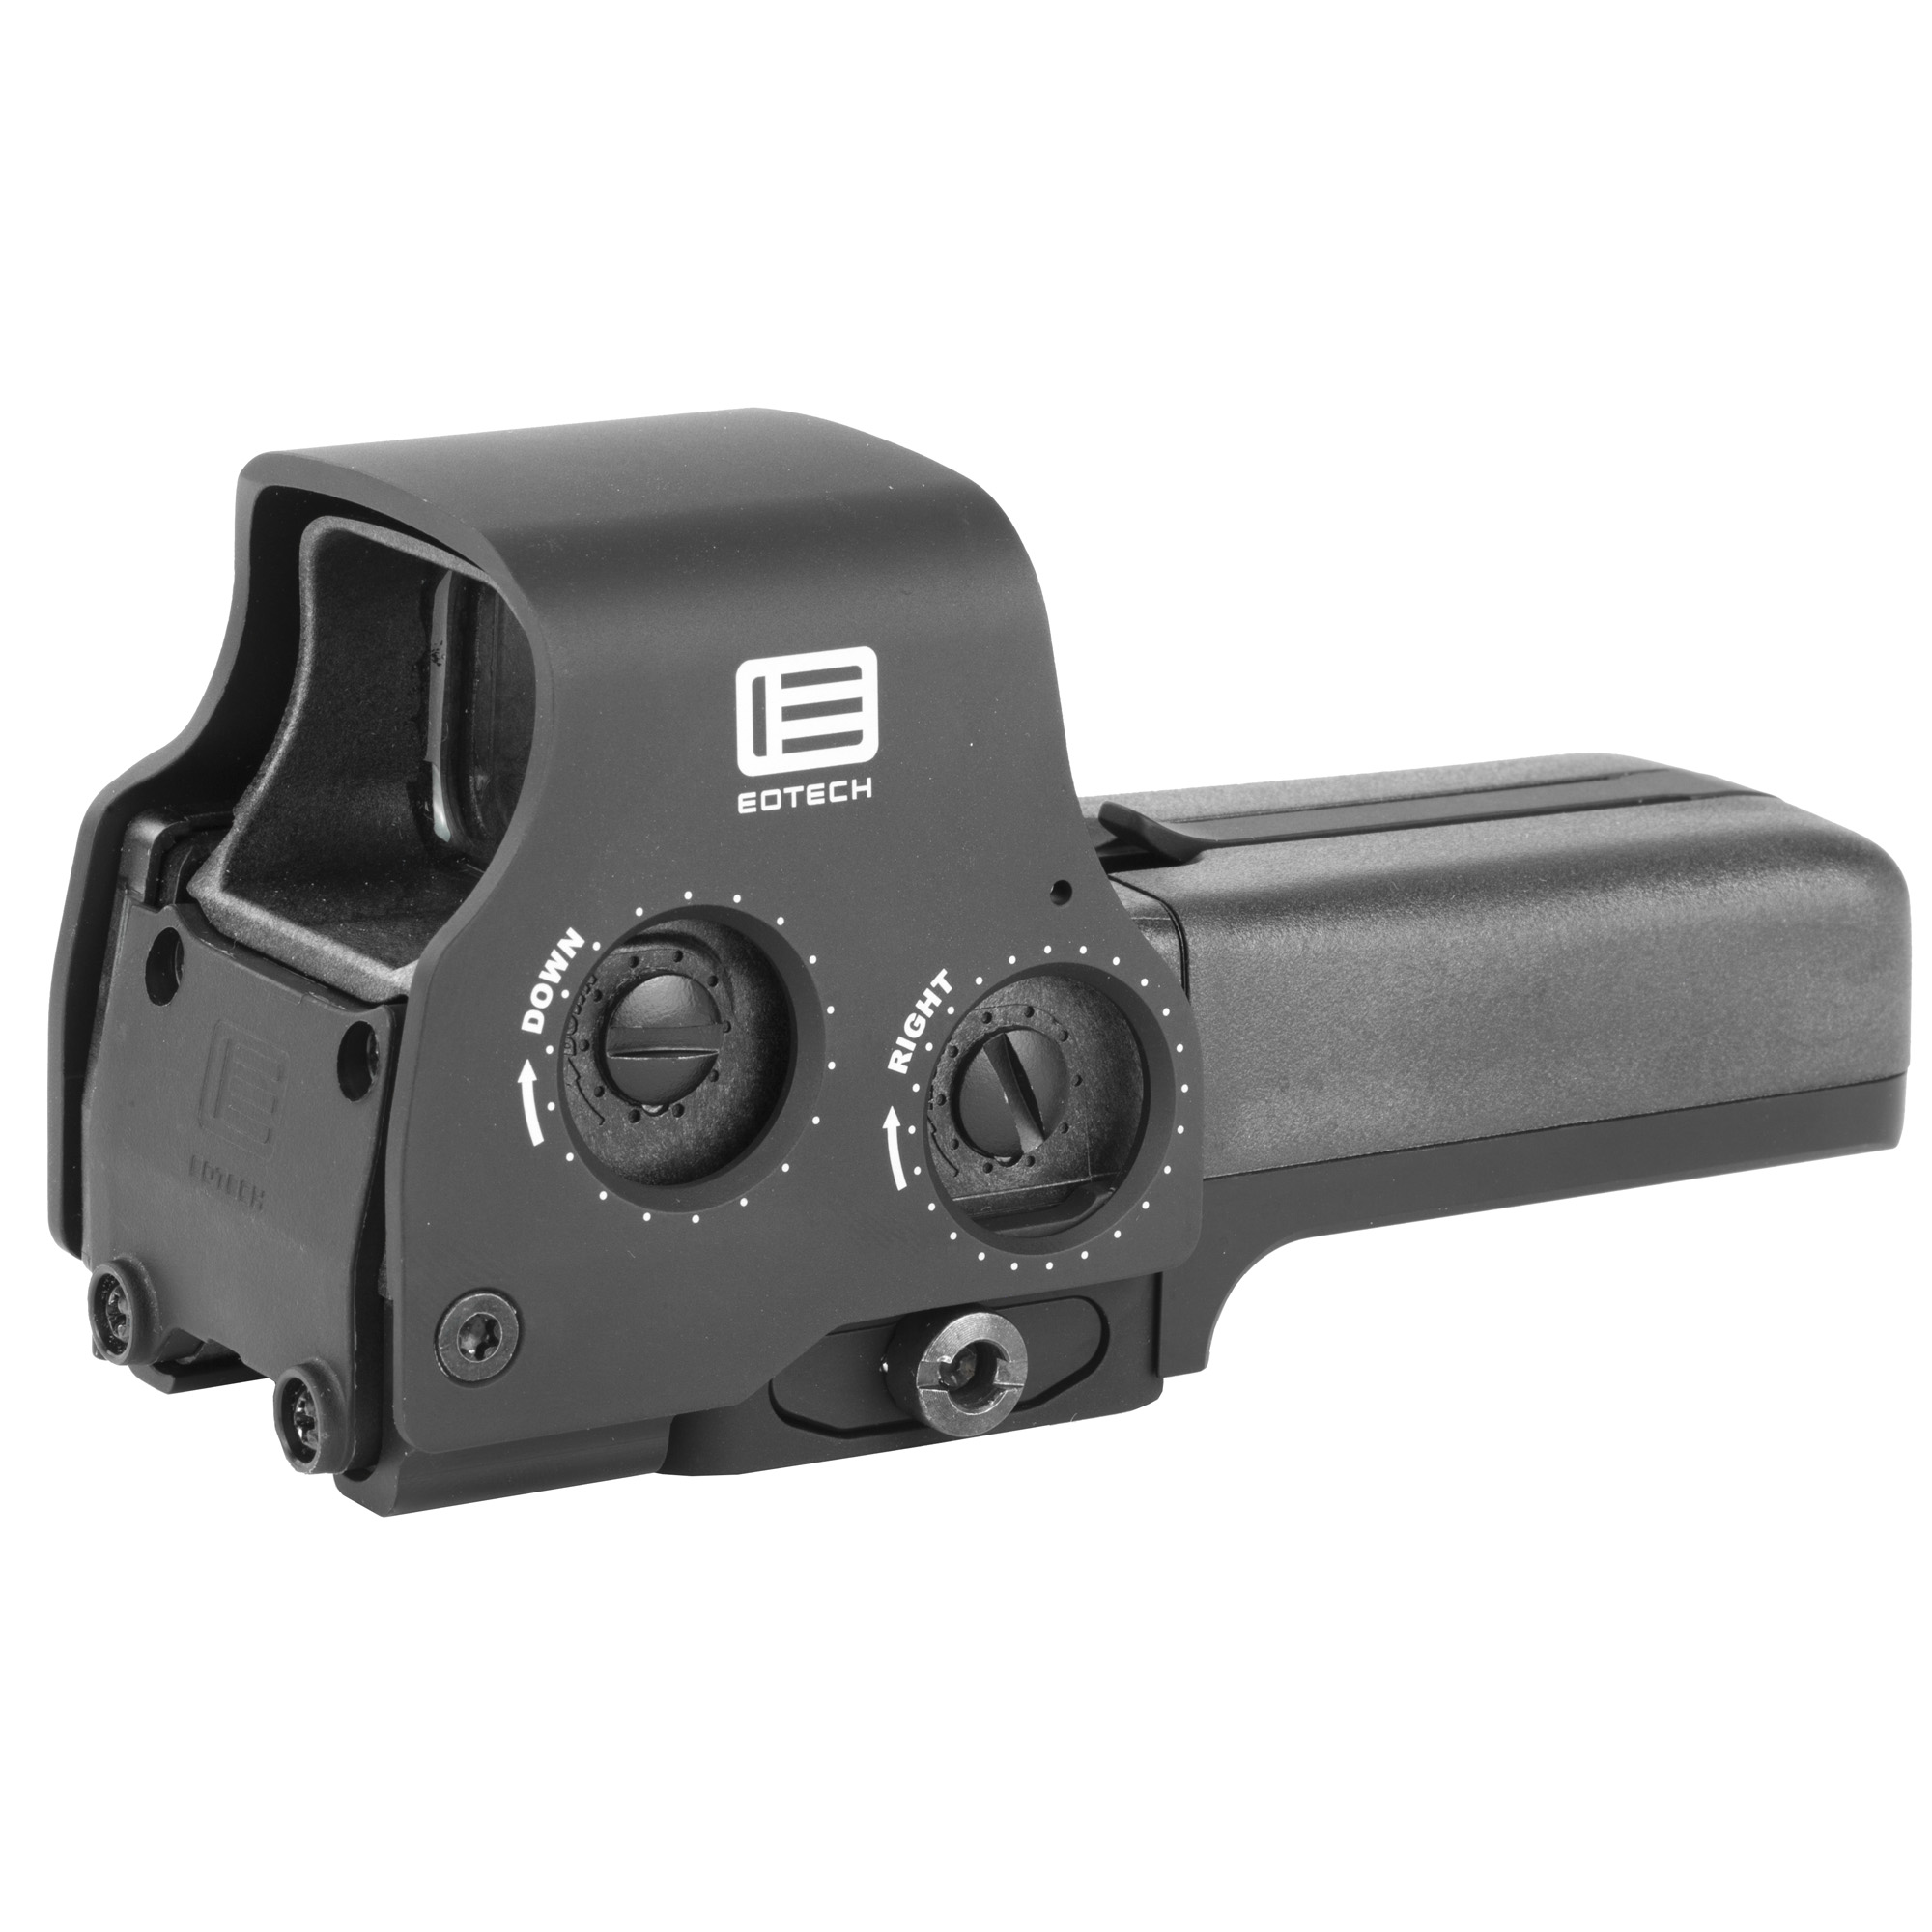 "Perfect for anyone that doesn't like to sacrifice. The 558 is compatible with Gen-I-III night vision devices and features an adjustable"" locking quick detach mount that offers instant removal. The operational buttons are located on the side of the sight making this optic ideal for use with EOTech switch-to-side magnifiers. The drop-in replacement Laser Battery Caps (LBC and LBC2) are designed to work with this model as well"" increasing your aiming capabilities and speed to target all day and night long."